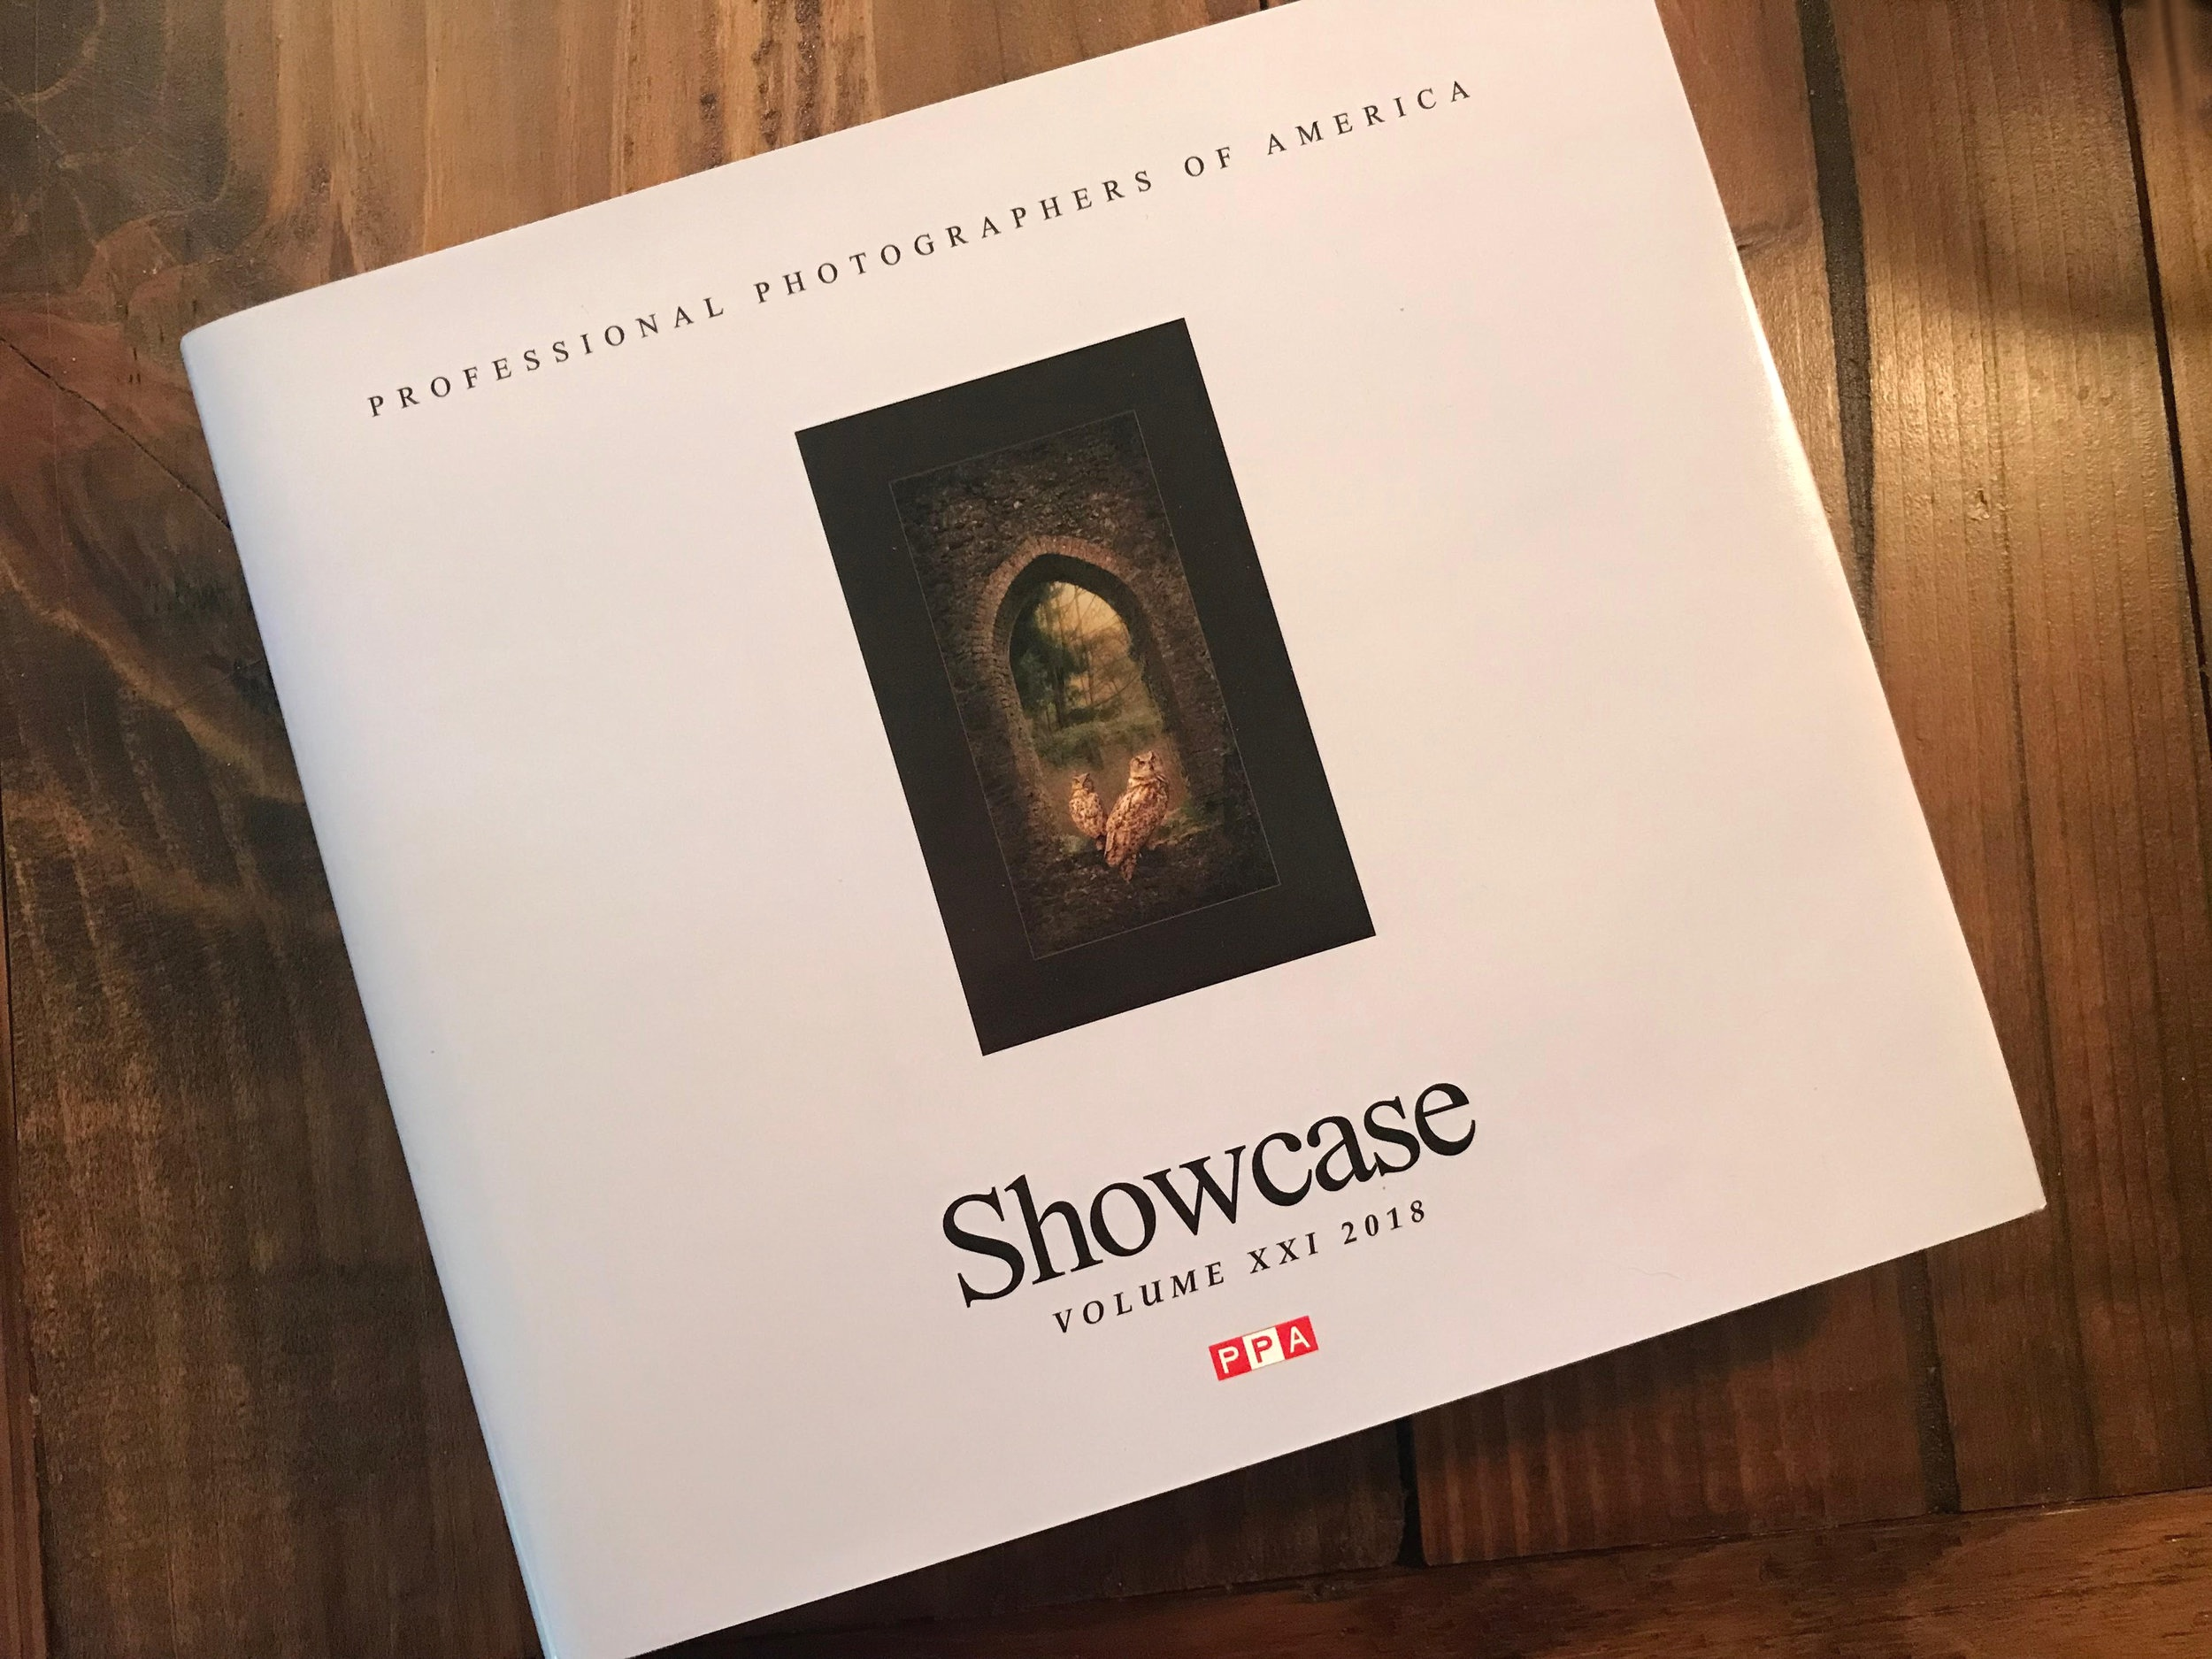 Showcase Annual Collection for Professional Photographer's Association!